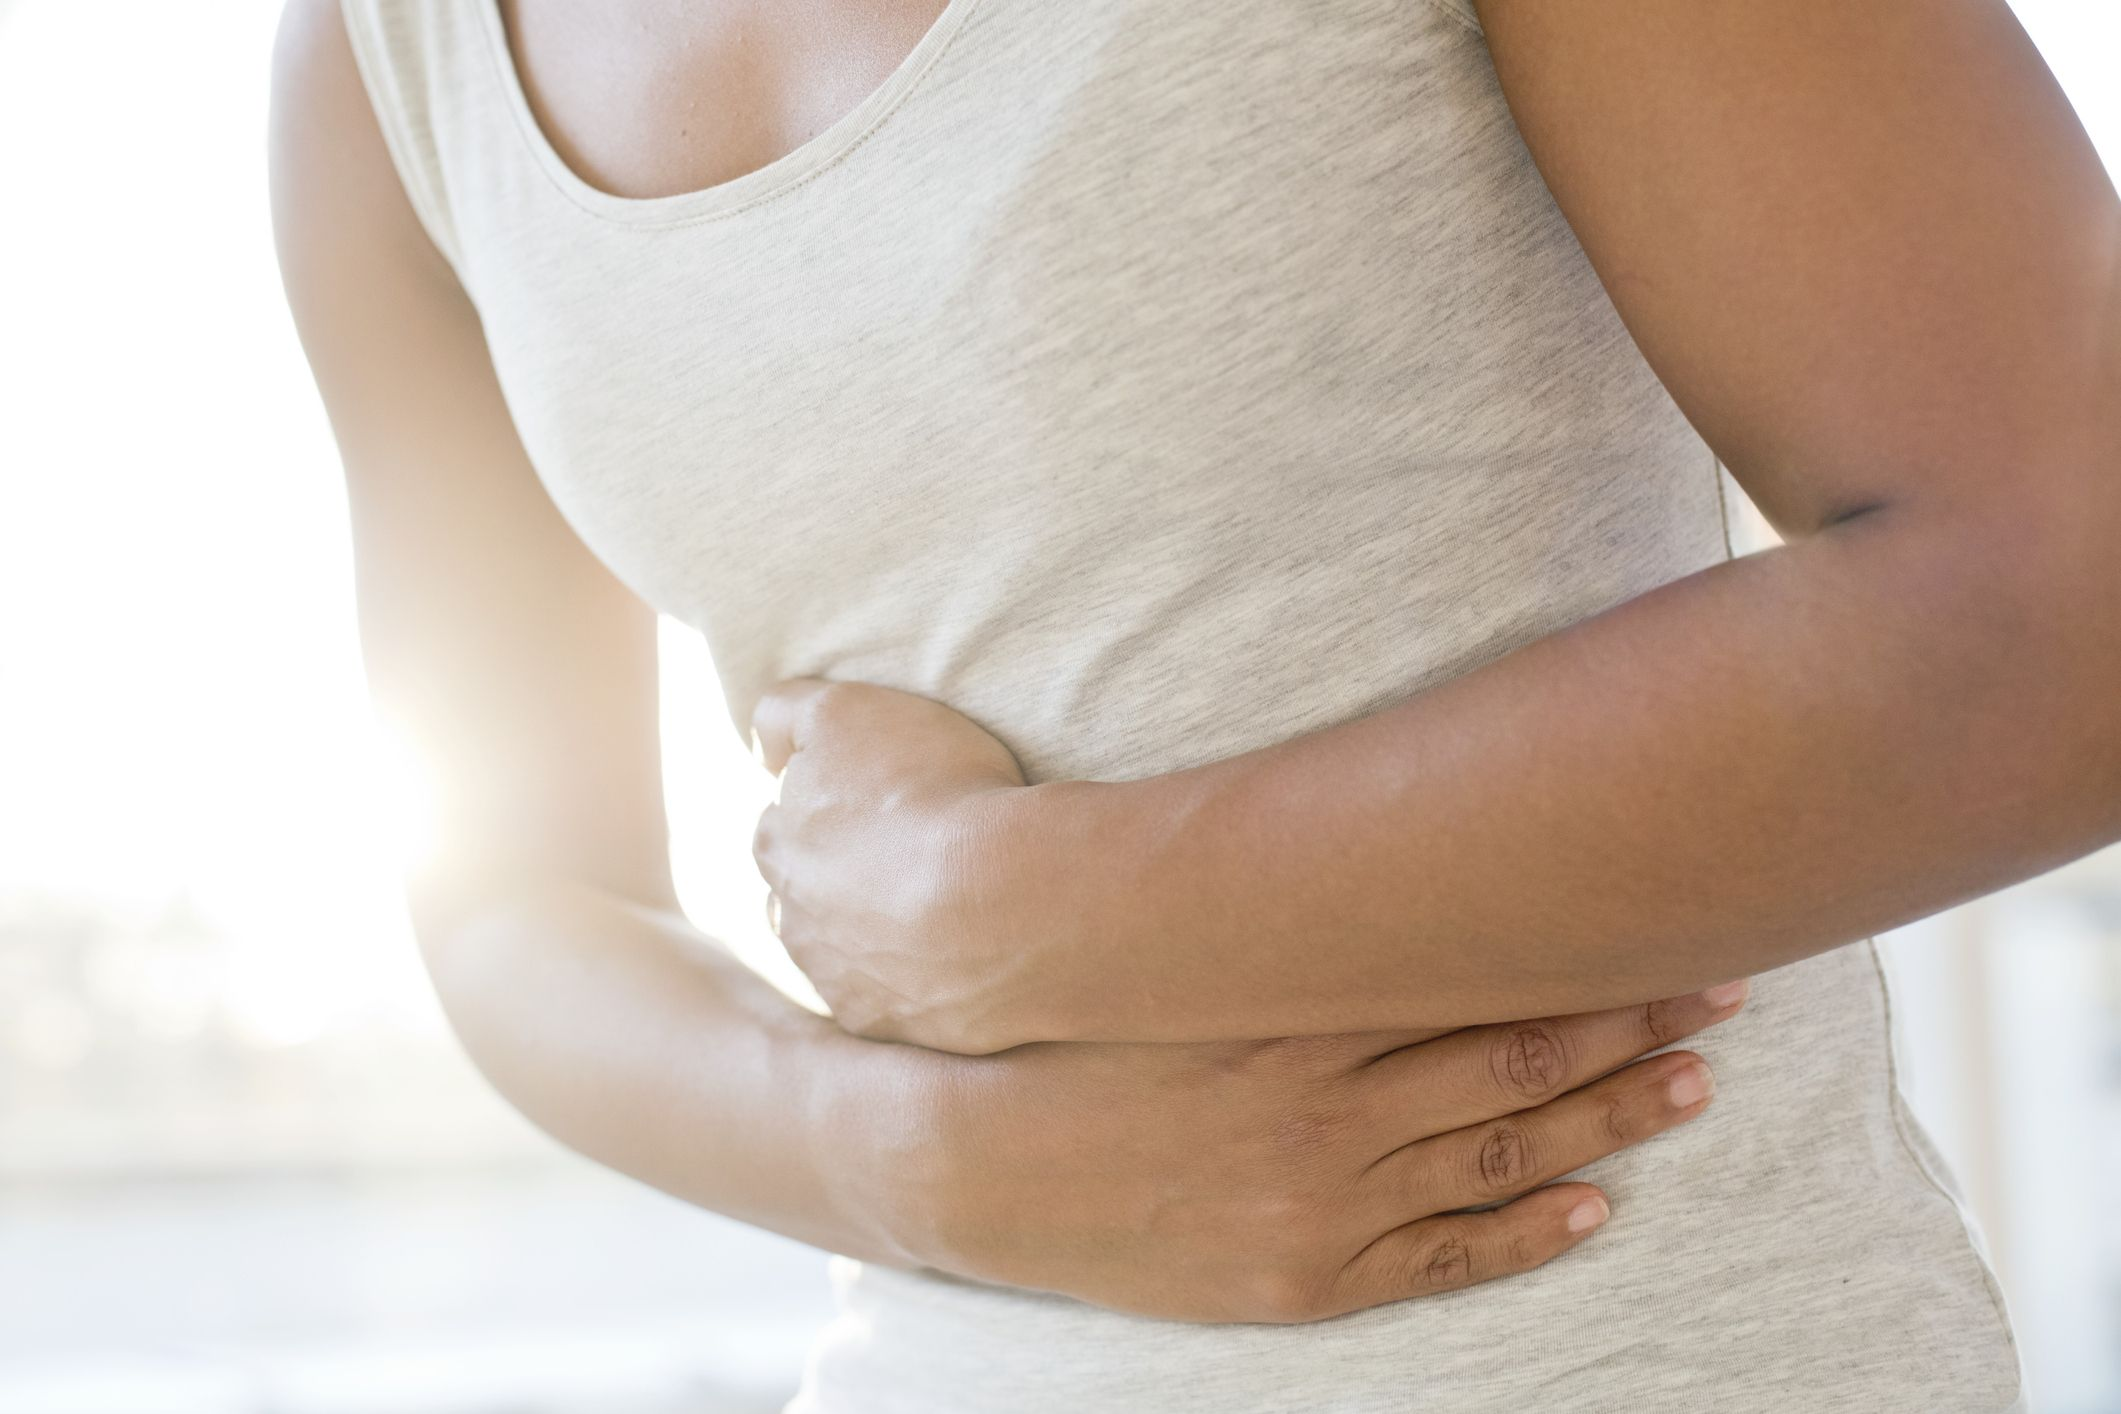 Woman in gray tank top clutching stomach in pain.